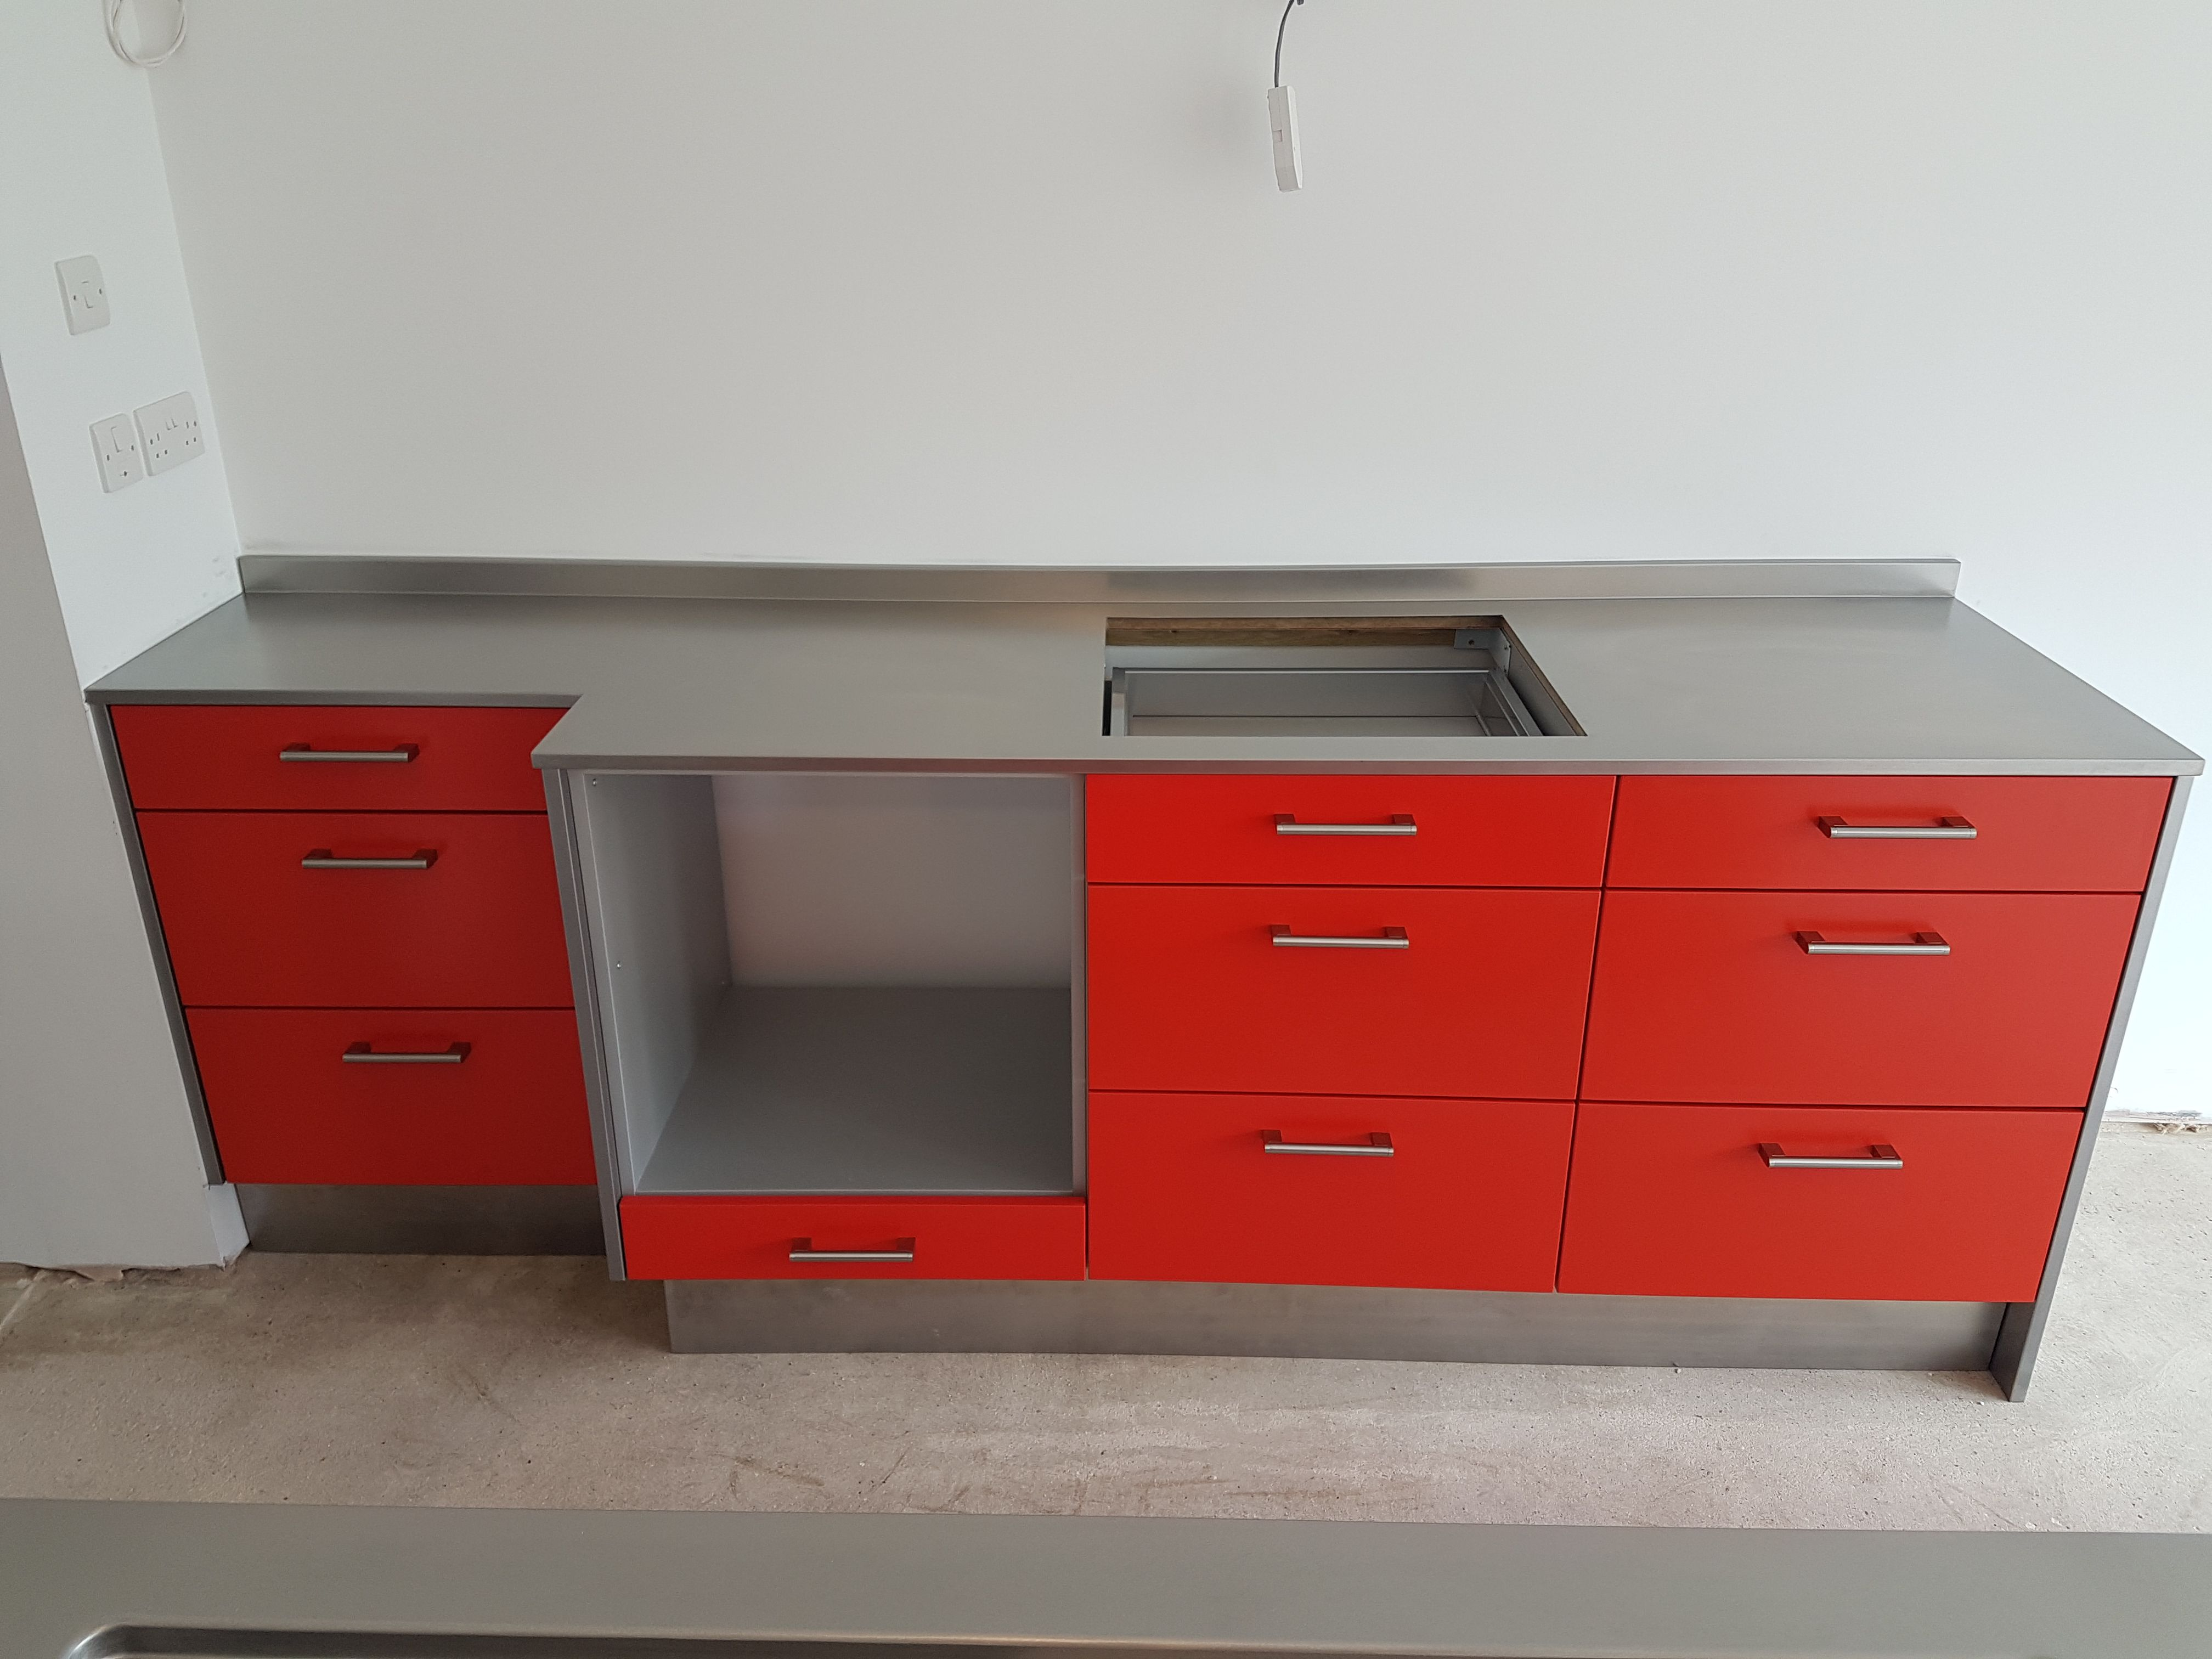 Hybrid Stainless Steel Kitchen Installation With Powder Coated Red Door And Drawer Fascia Panels 3 Stainless Steel Kitchen Kitchen Installation Red Door